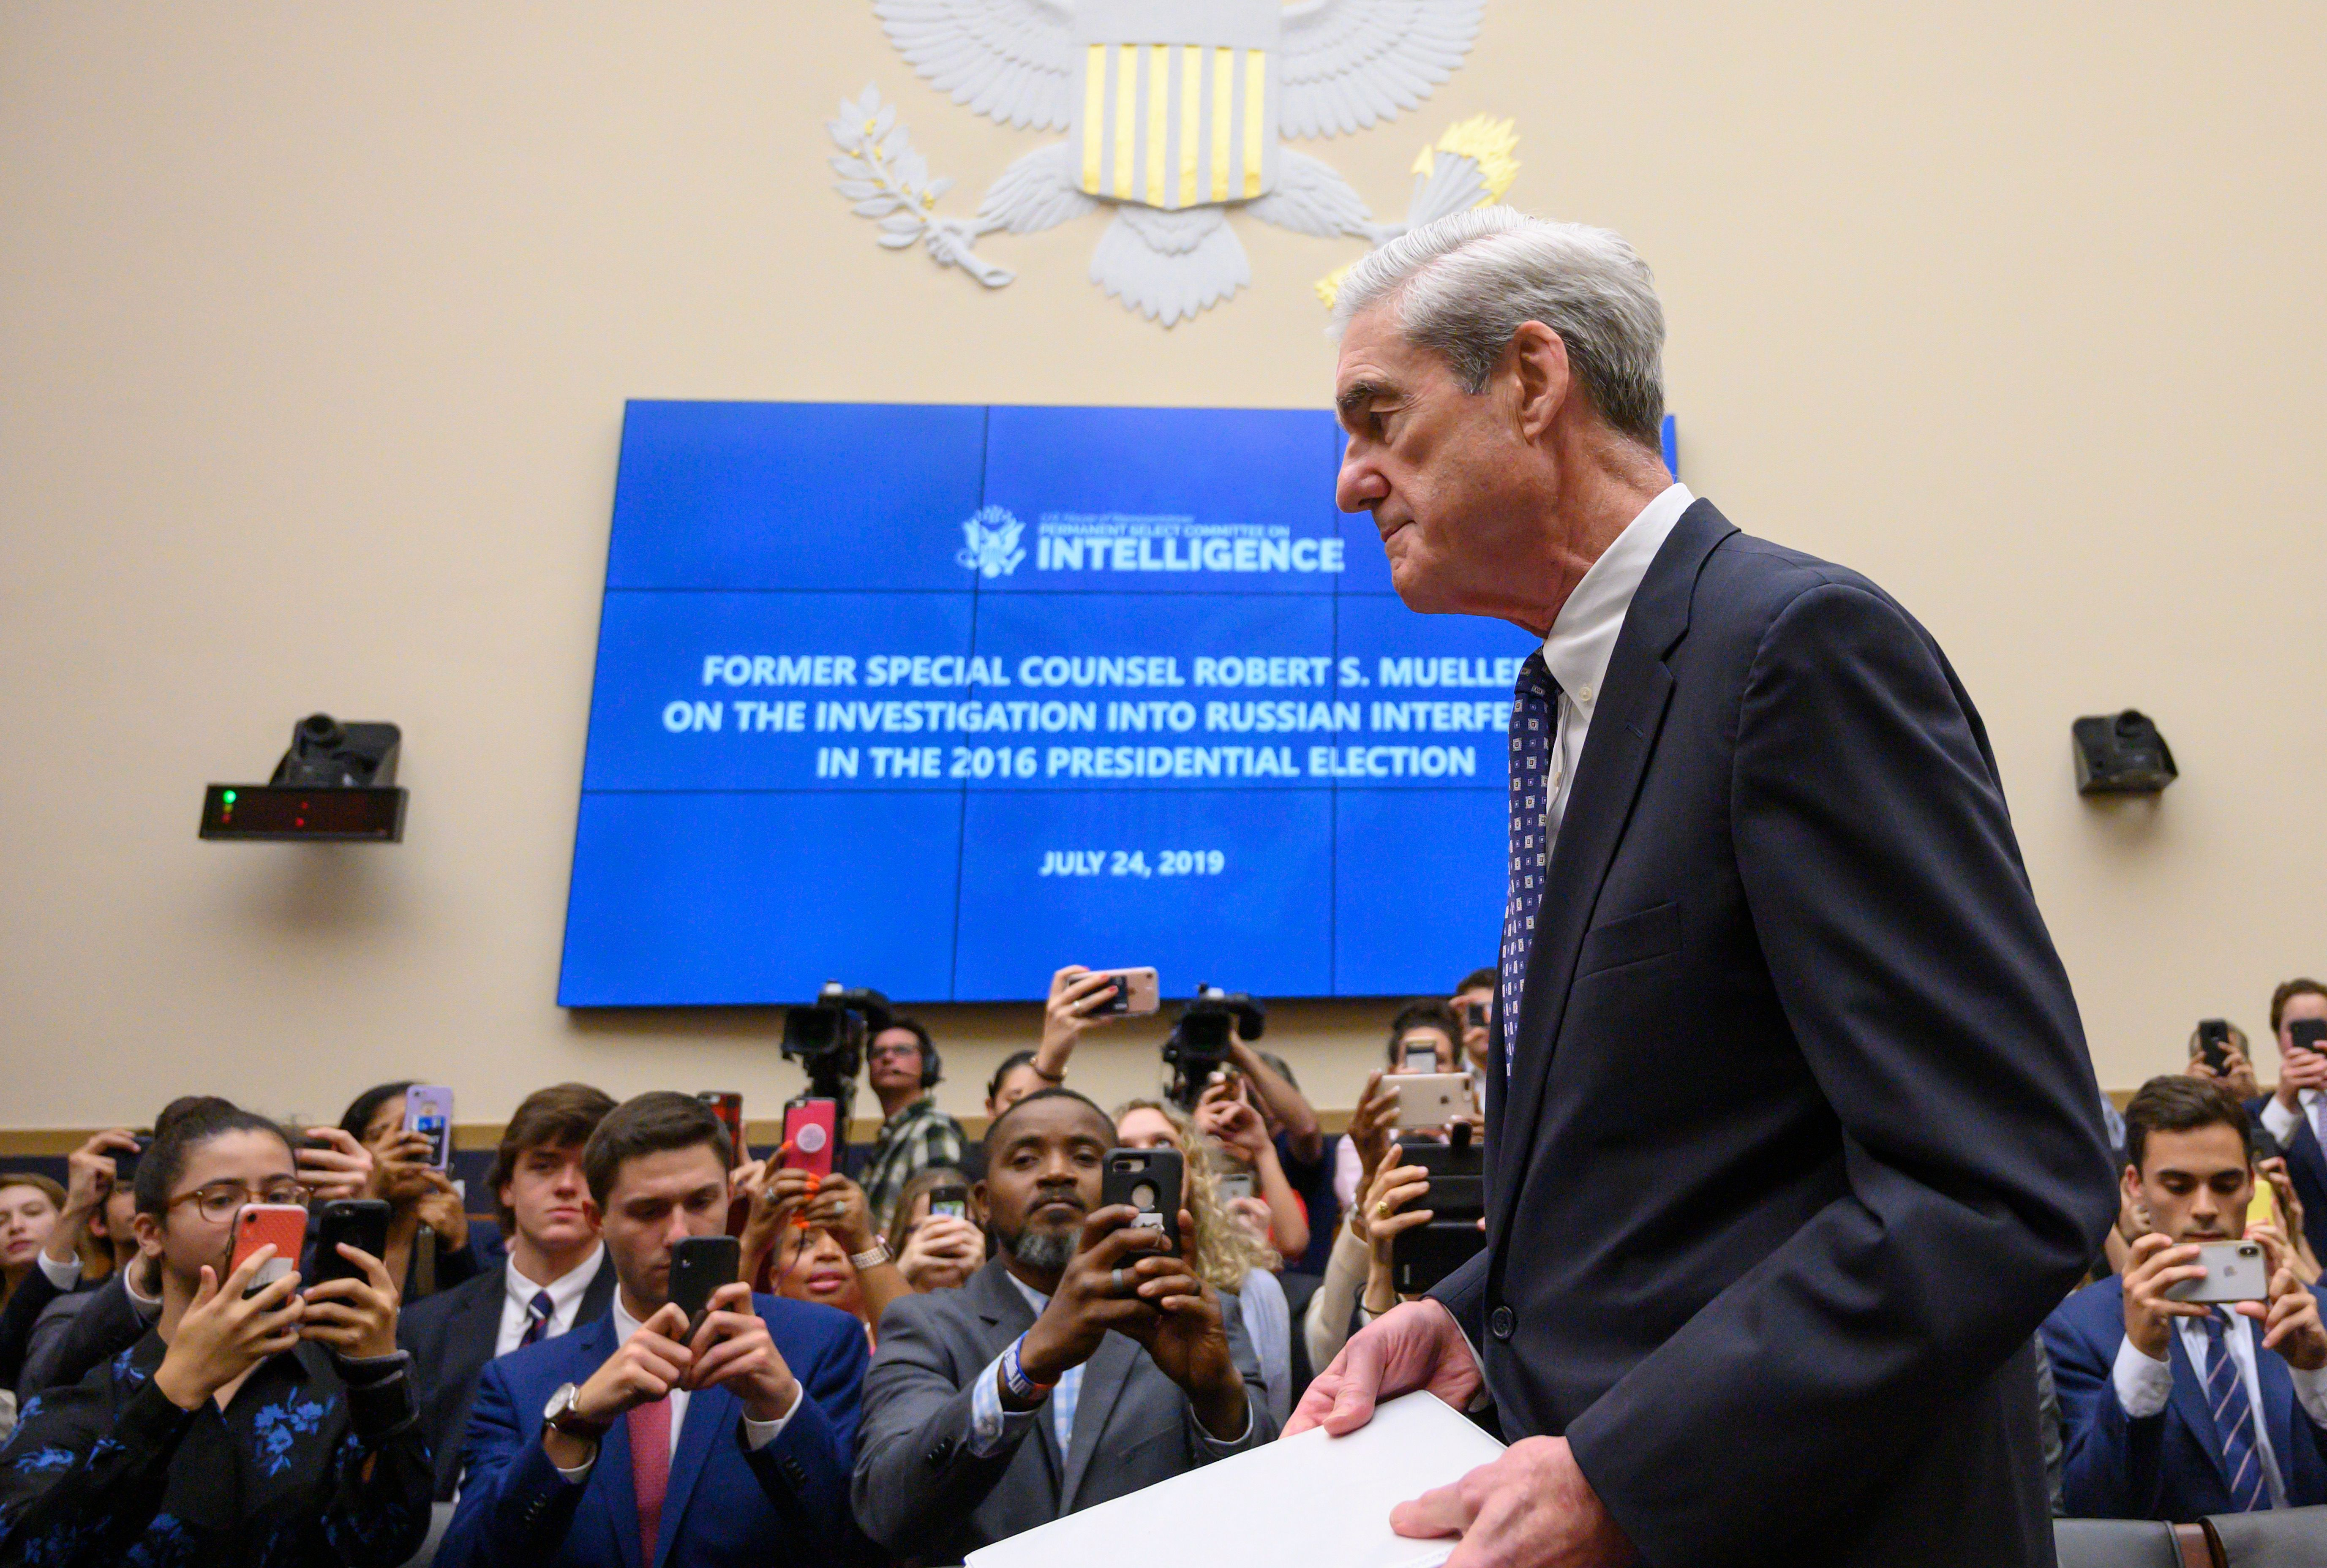 (JIM WATSON/AFP/Getty Images)